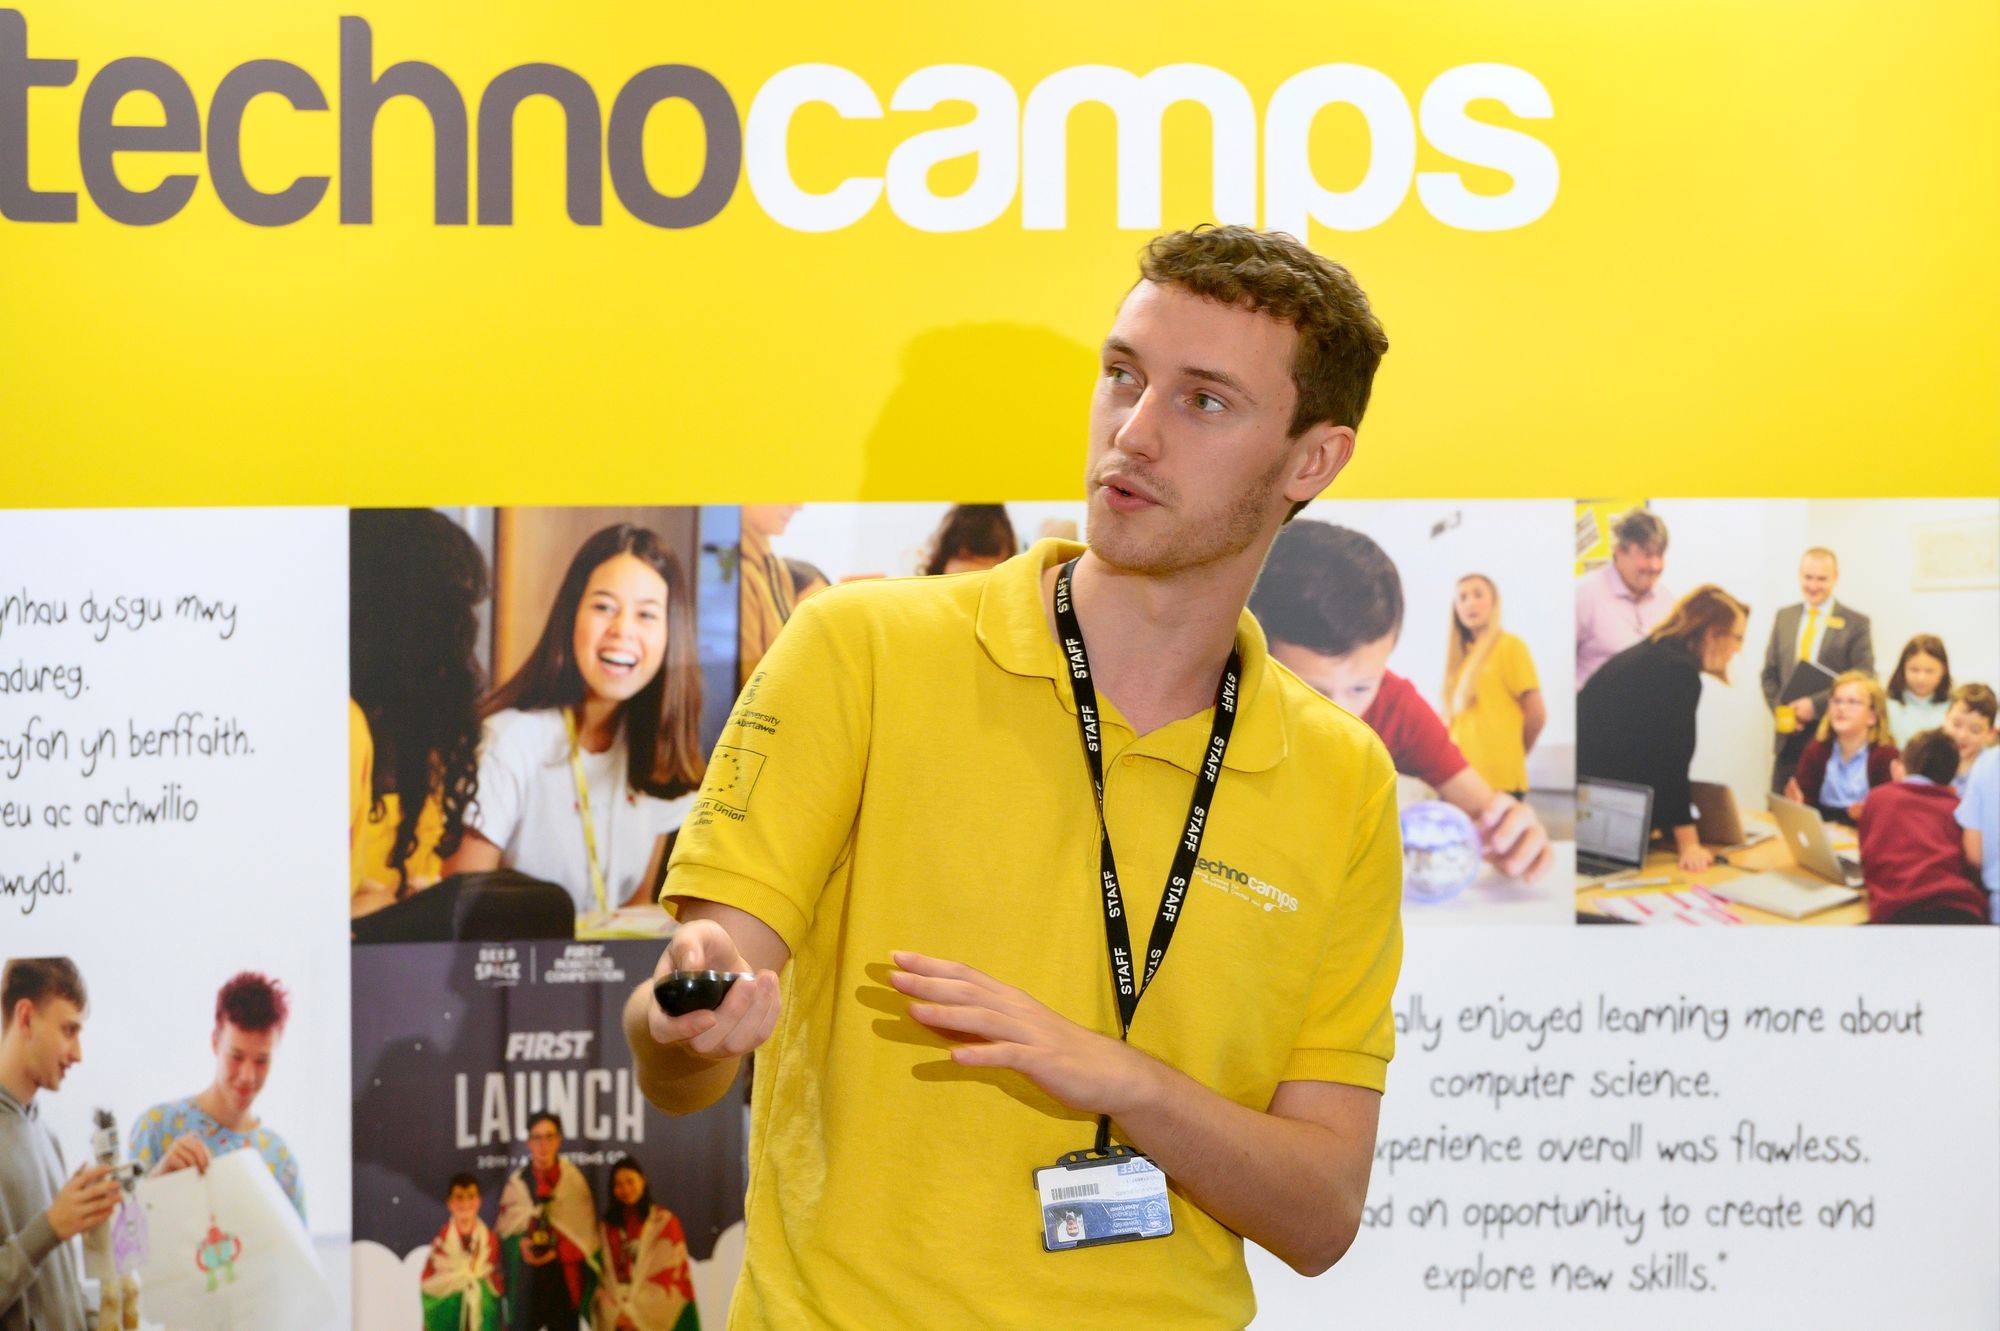 Main Image - Technocamps is a pan-Wales project delivering free workshops for schools